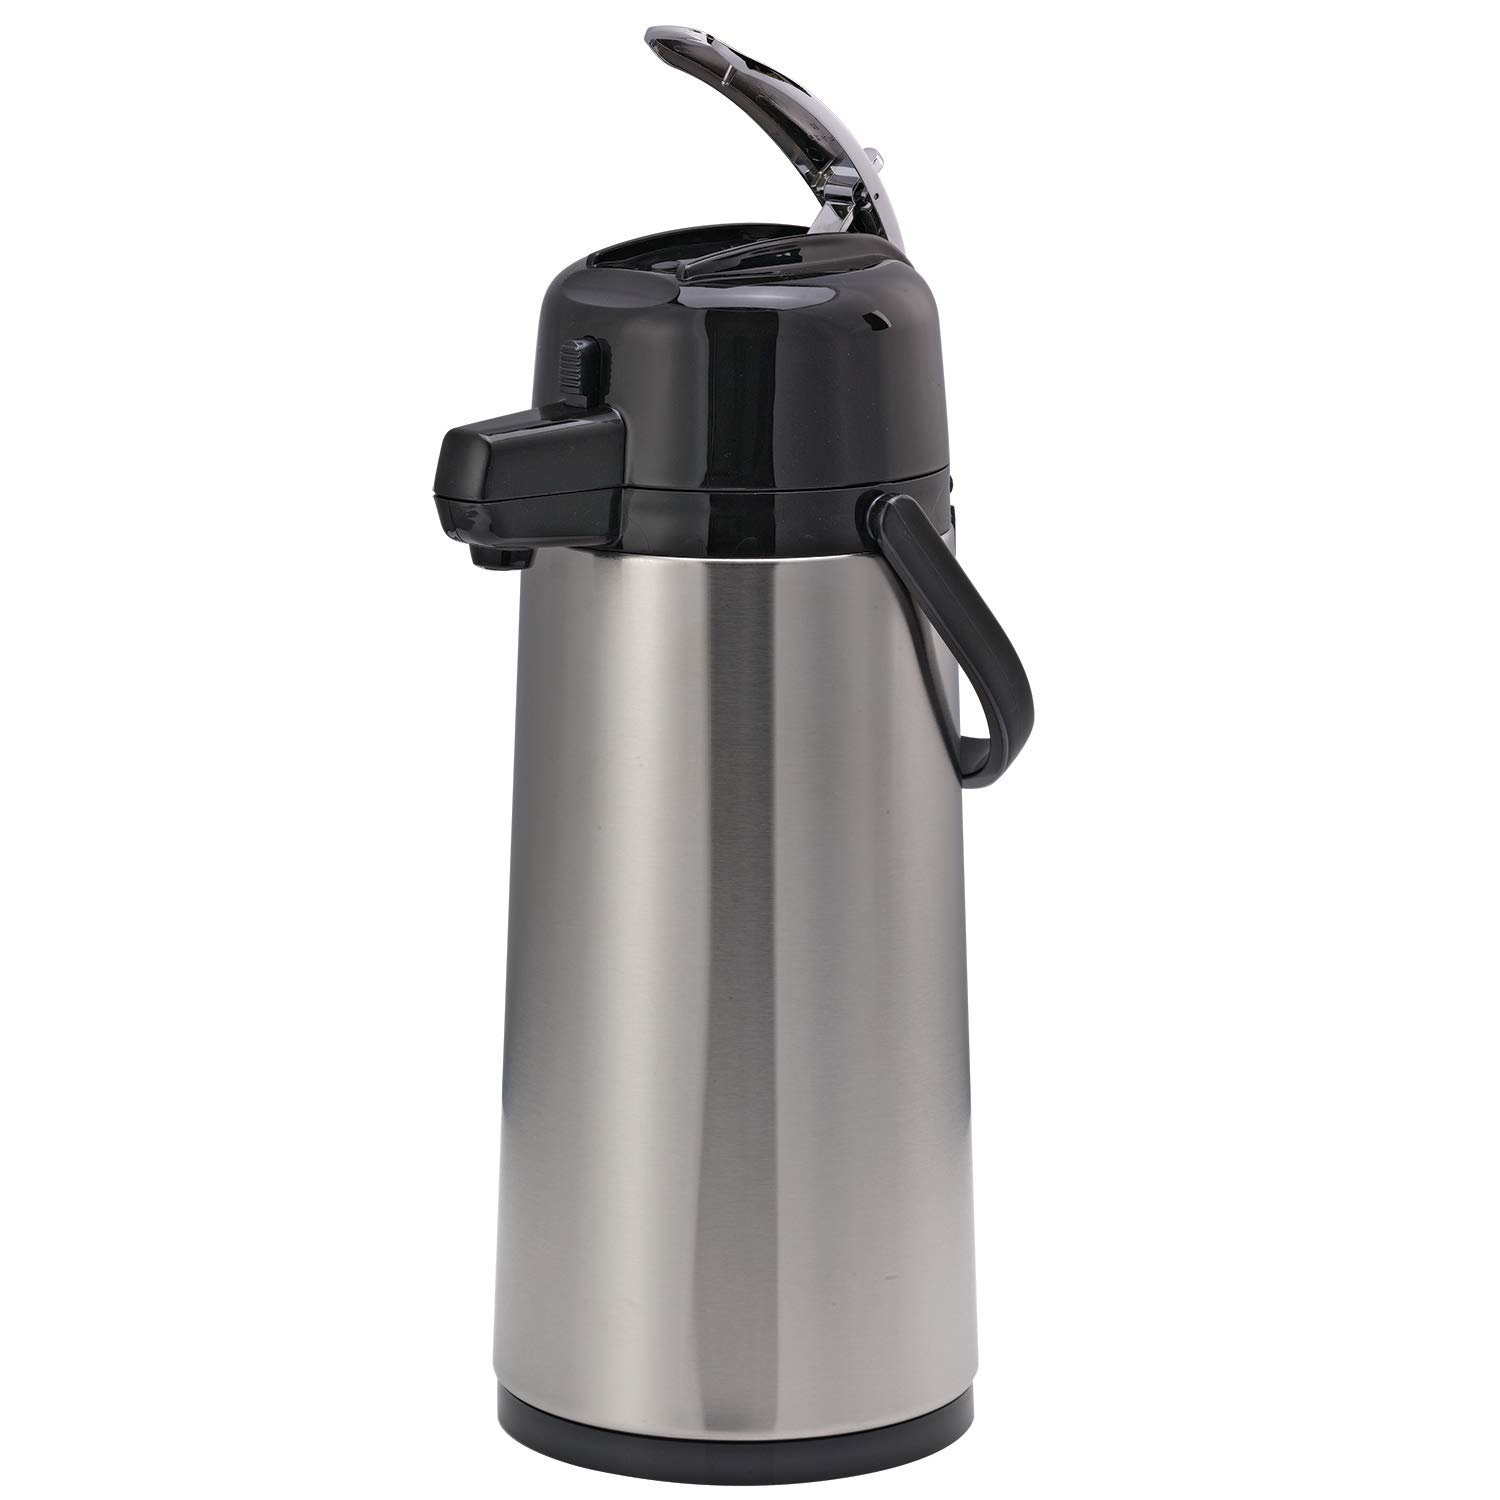 Service Ideas ECAL19S Eco-Air Airpot with Lever lid, 1.9L, Glass Lined